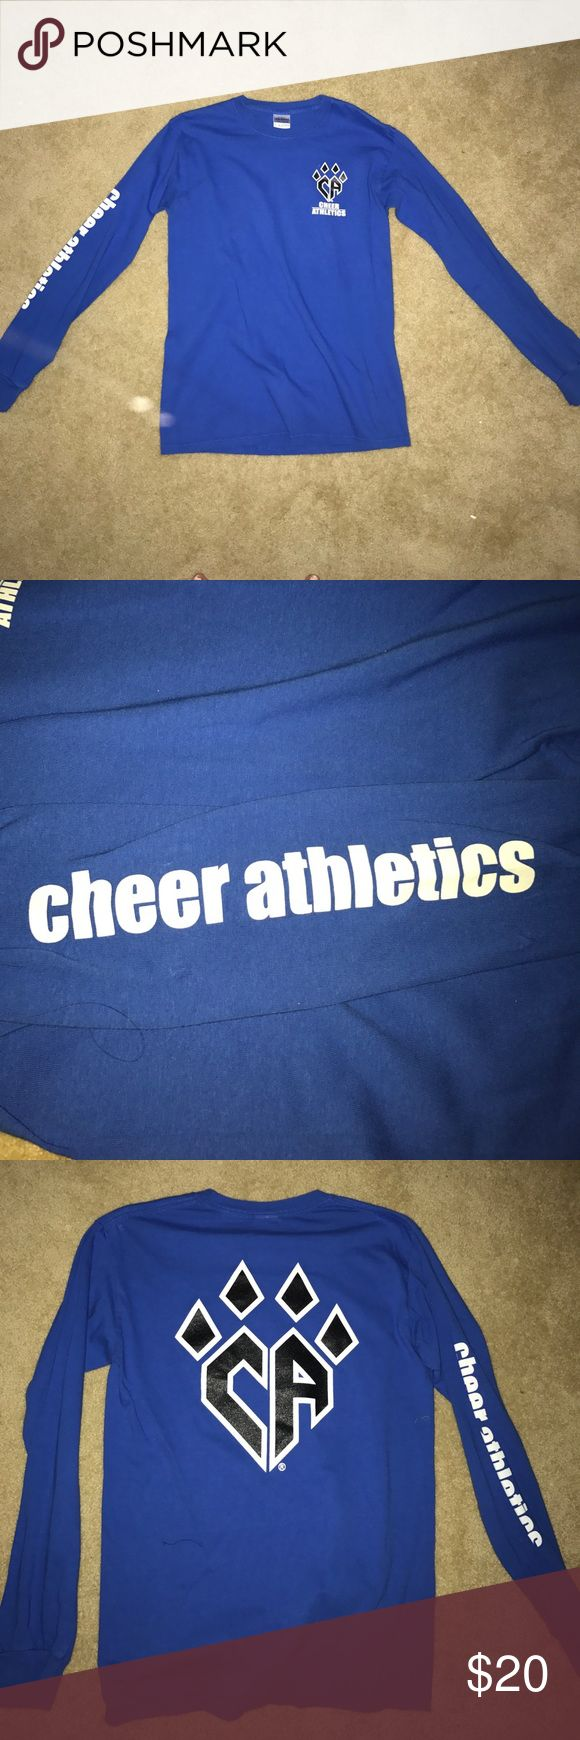 Cheer Athletics Blue Claws long sleeve tshirt Super cute cheer athletics too still in great condition Tops Tees - Long Sleeve